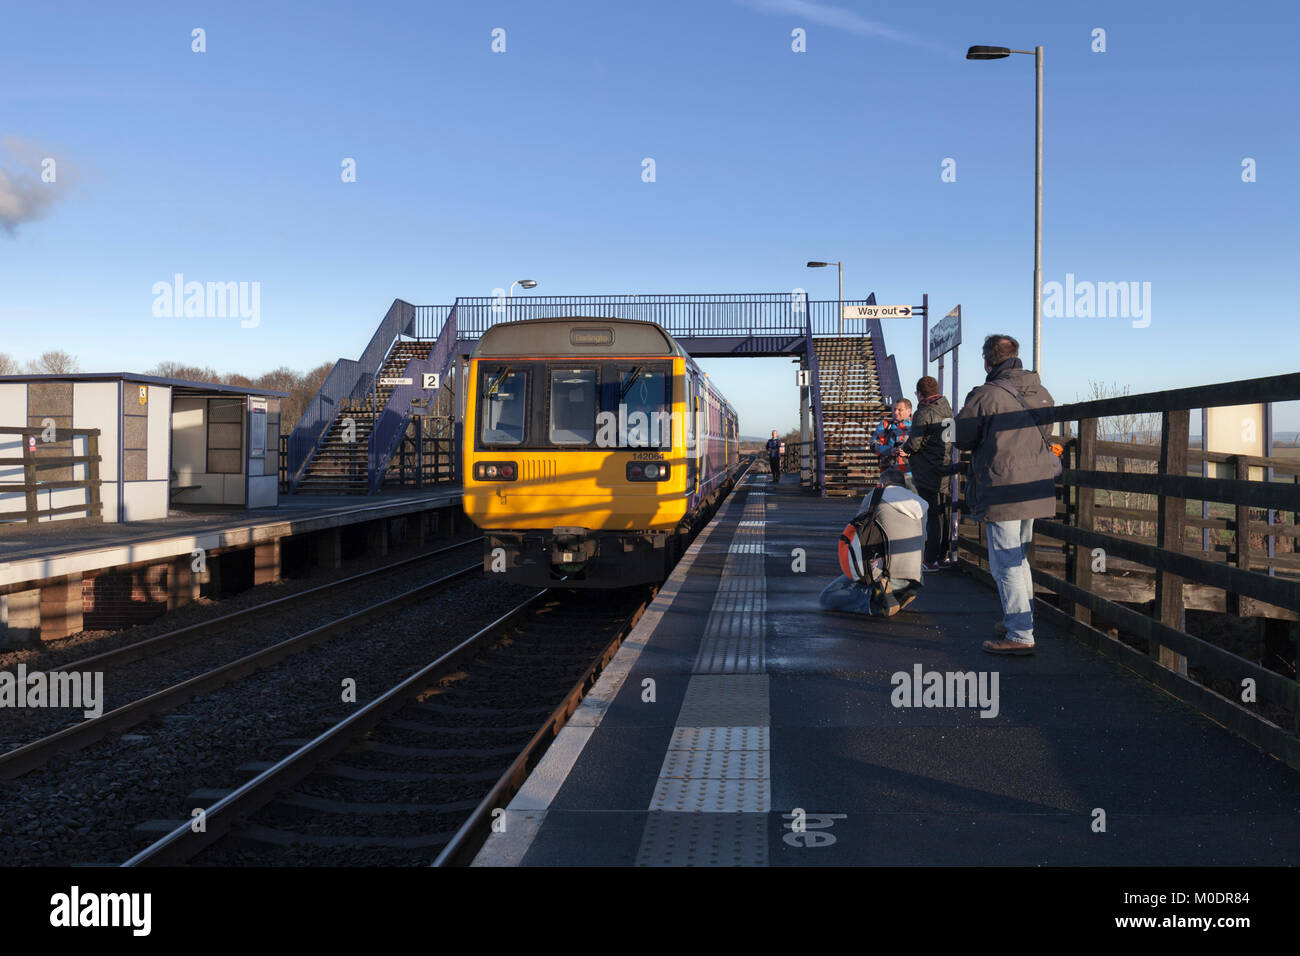 07/01/2018 Teesside Airport the Sundays only 1425 Hartlepool - Darlington 'ghost  train' calls, the only - Stock Image